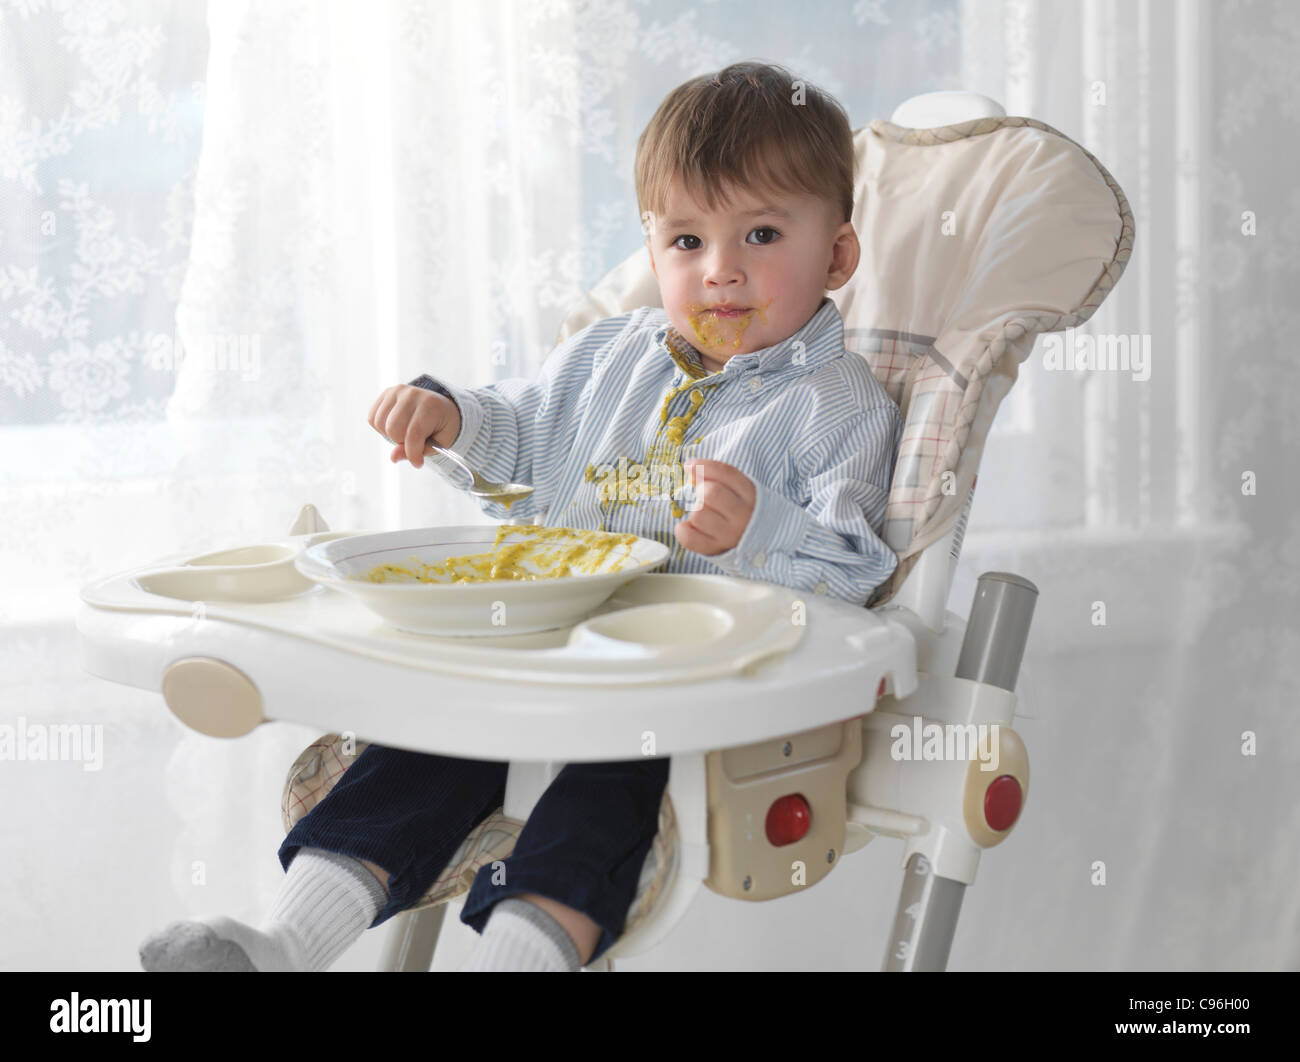 One and a half year old boy sitting in a high chair and eating soup with a spoon, spilling it on his shirt - Stock Image